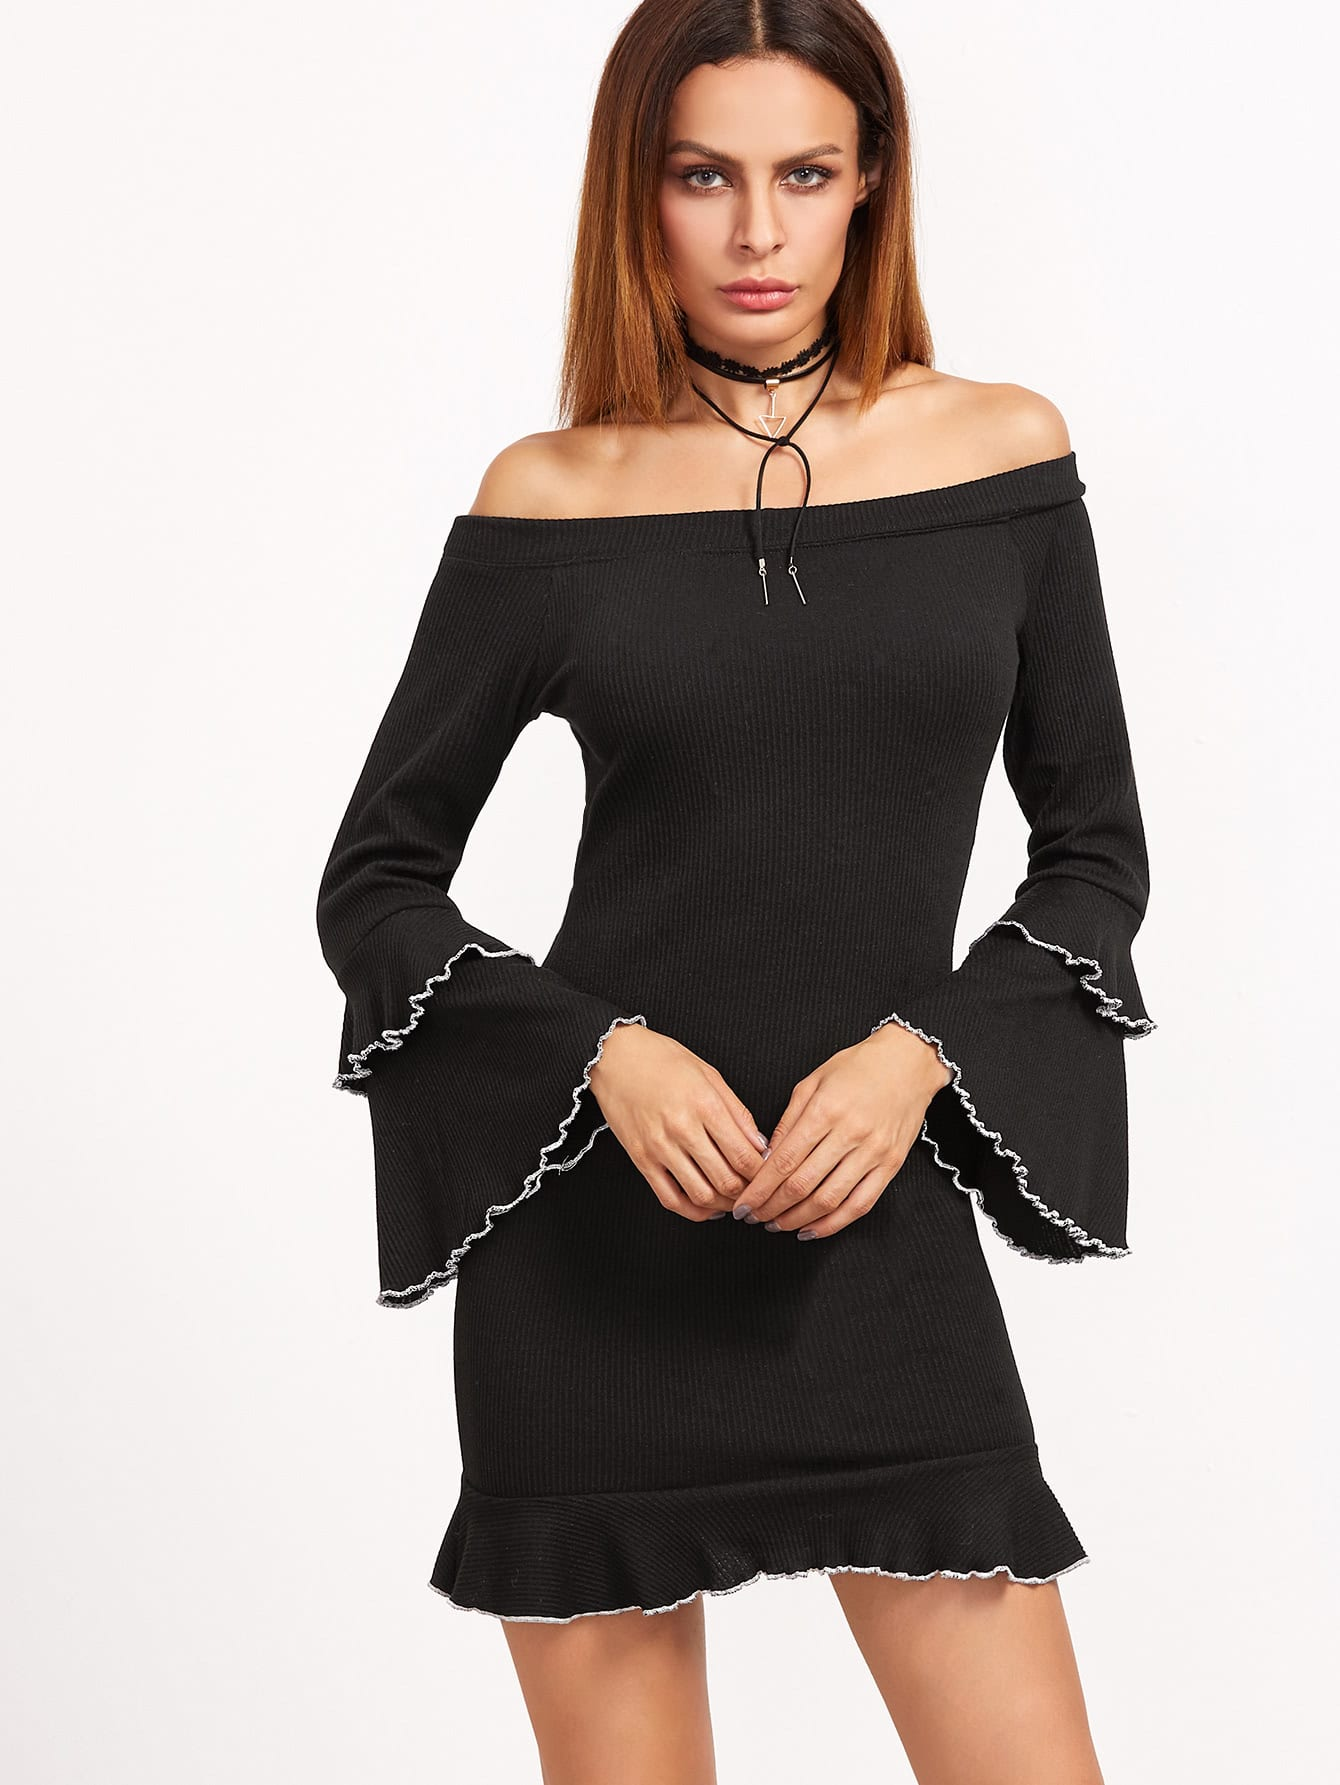 Black Ribbed Knit Off The Shoulder Ruffle Dress dress161123721